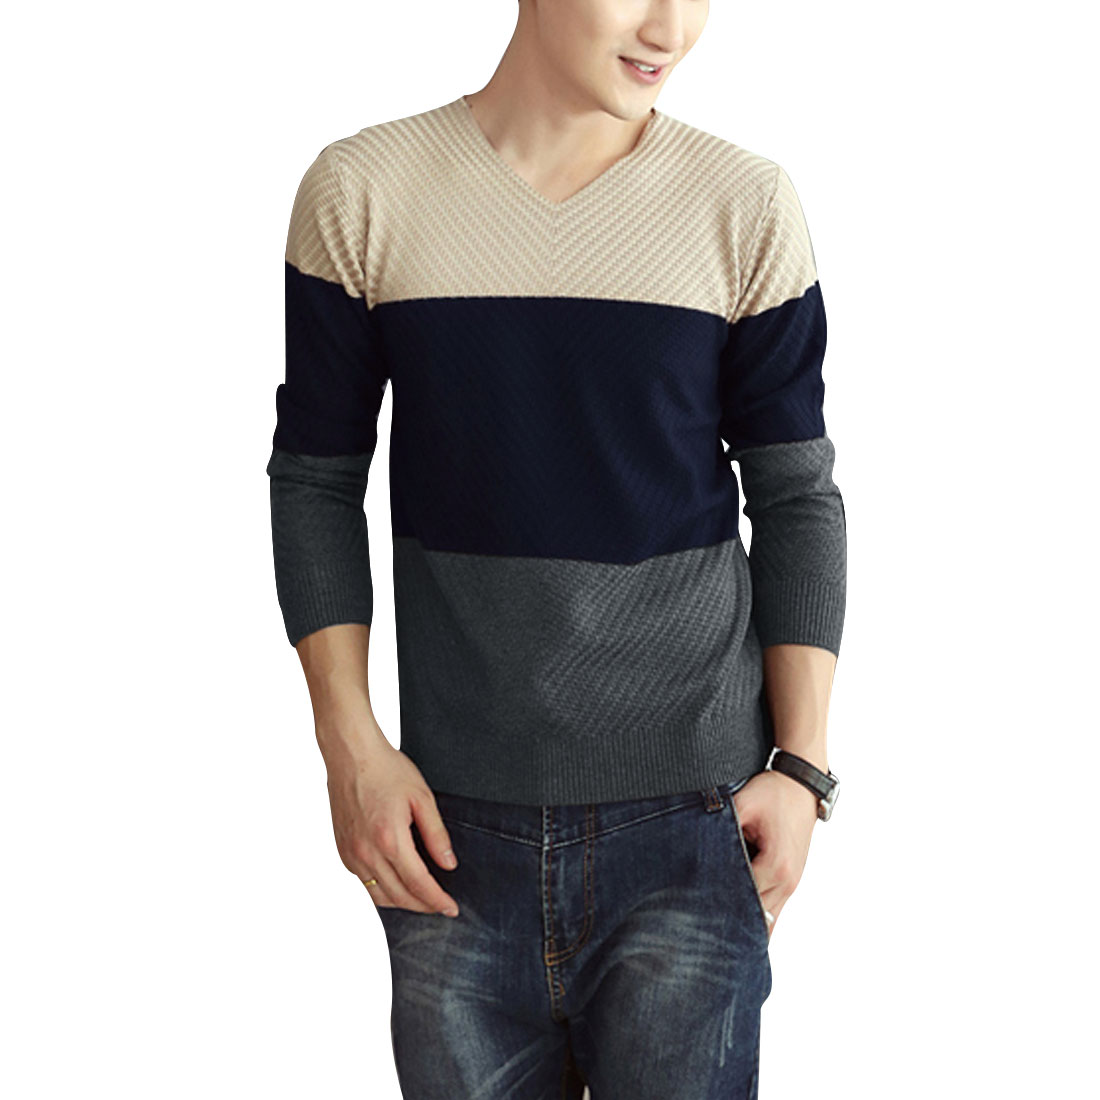 Men's Chic Color Block Casual V Neck Pullover Apricot Knitted Sweater M